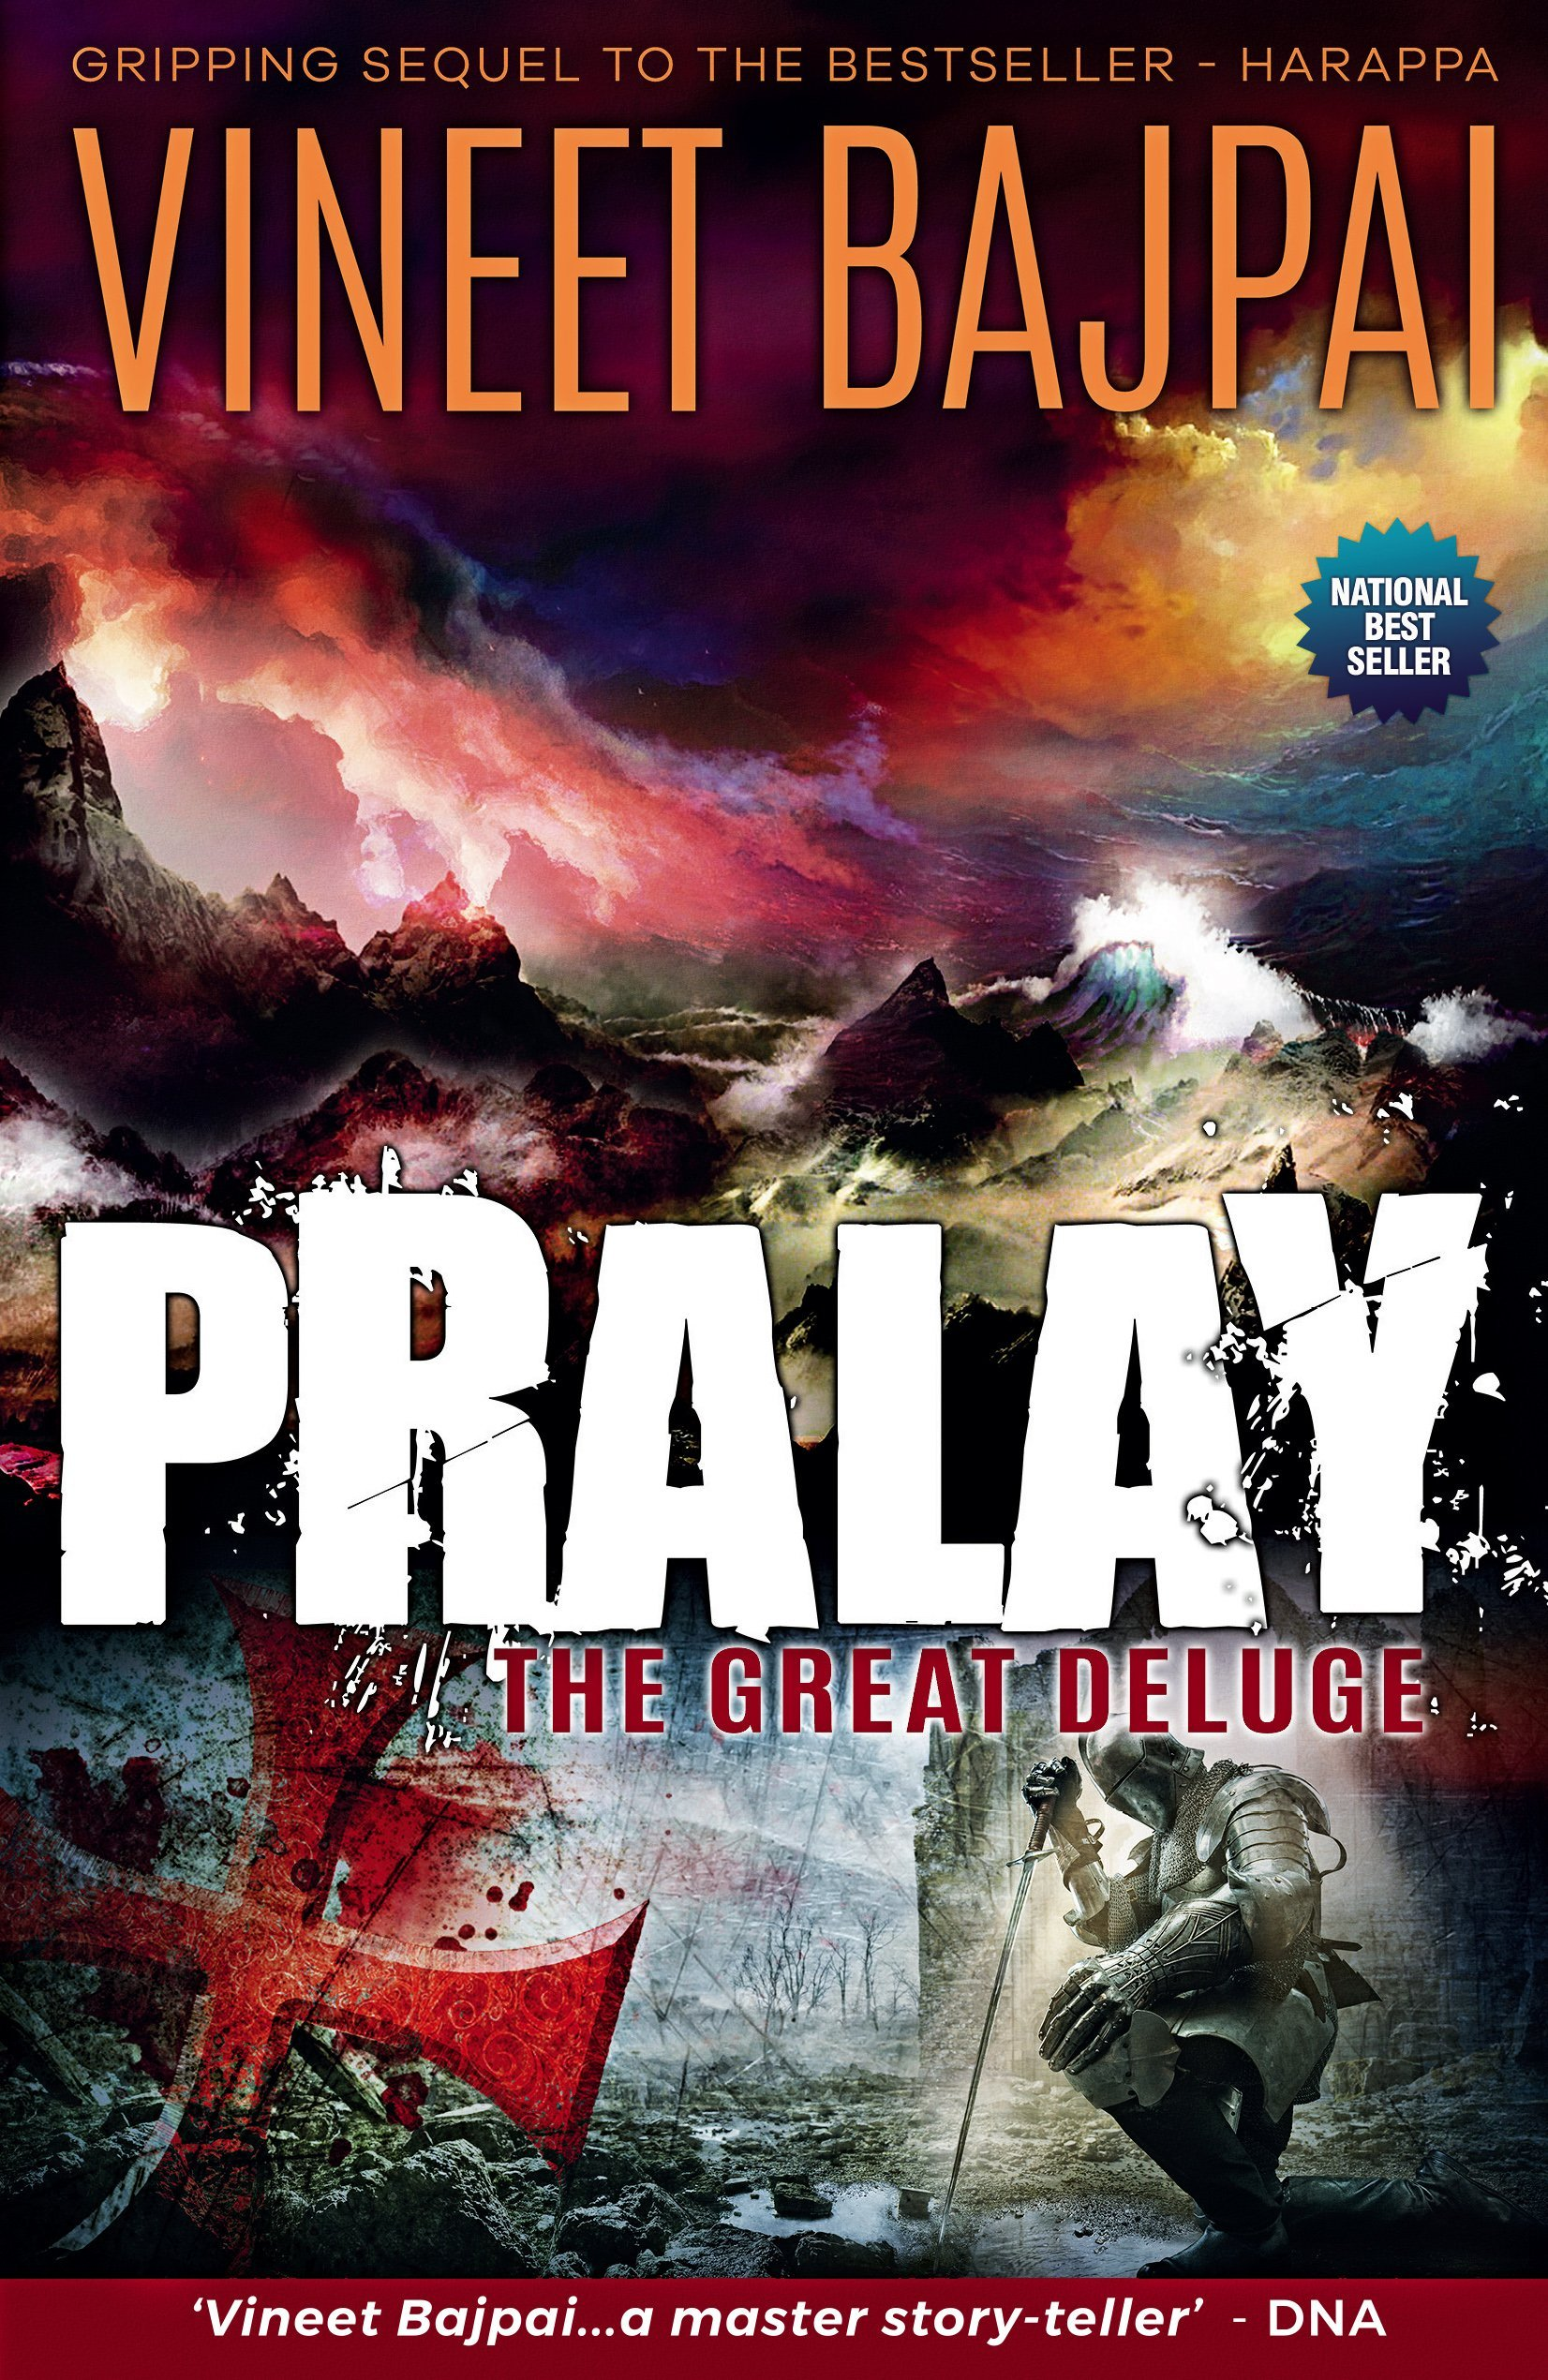 Buy Pralay: The Great Deluge (Harappa) Book Online at Low Prices in India |  Pralay: The Great Deluge (Harappa) Reviews & Ratings - Amazon.in